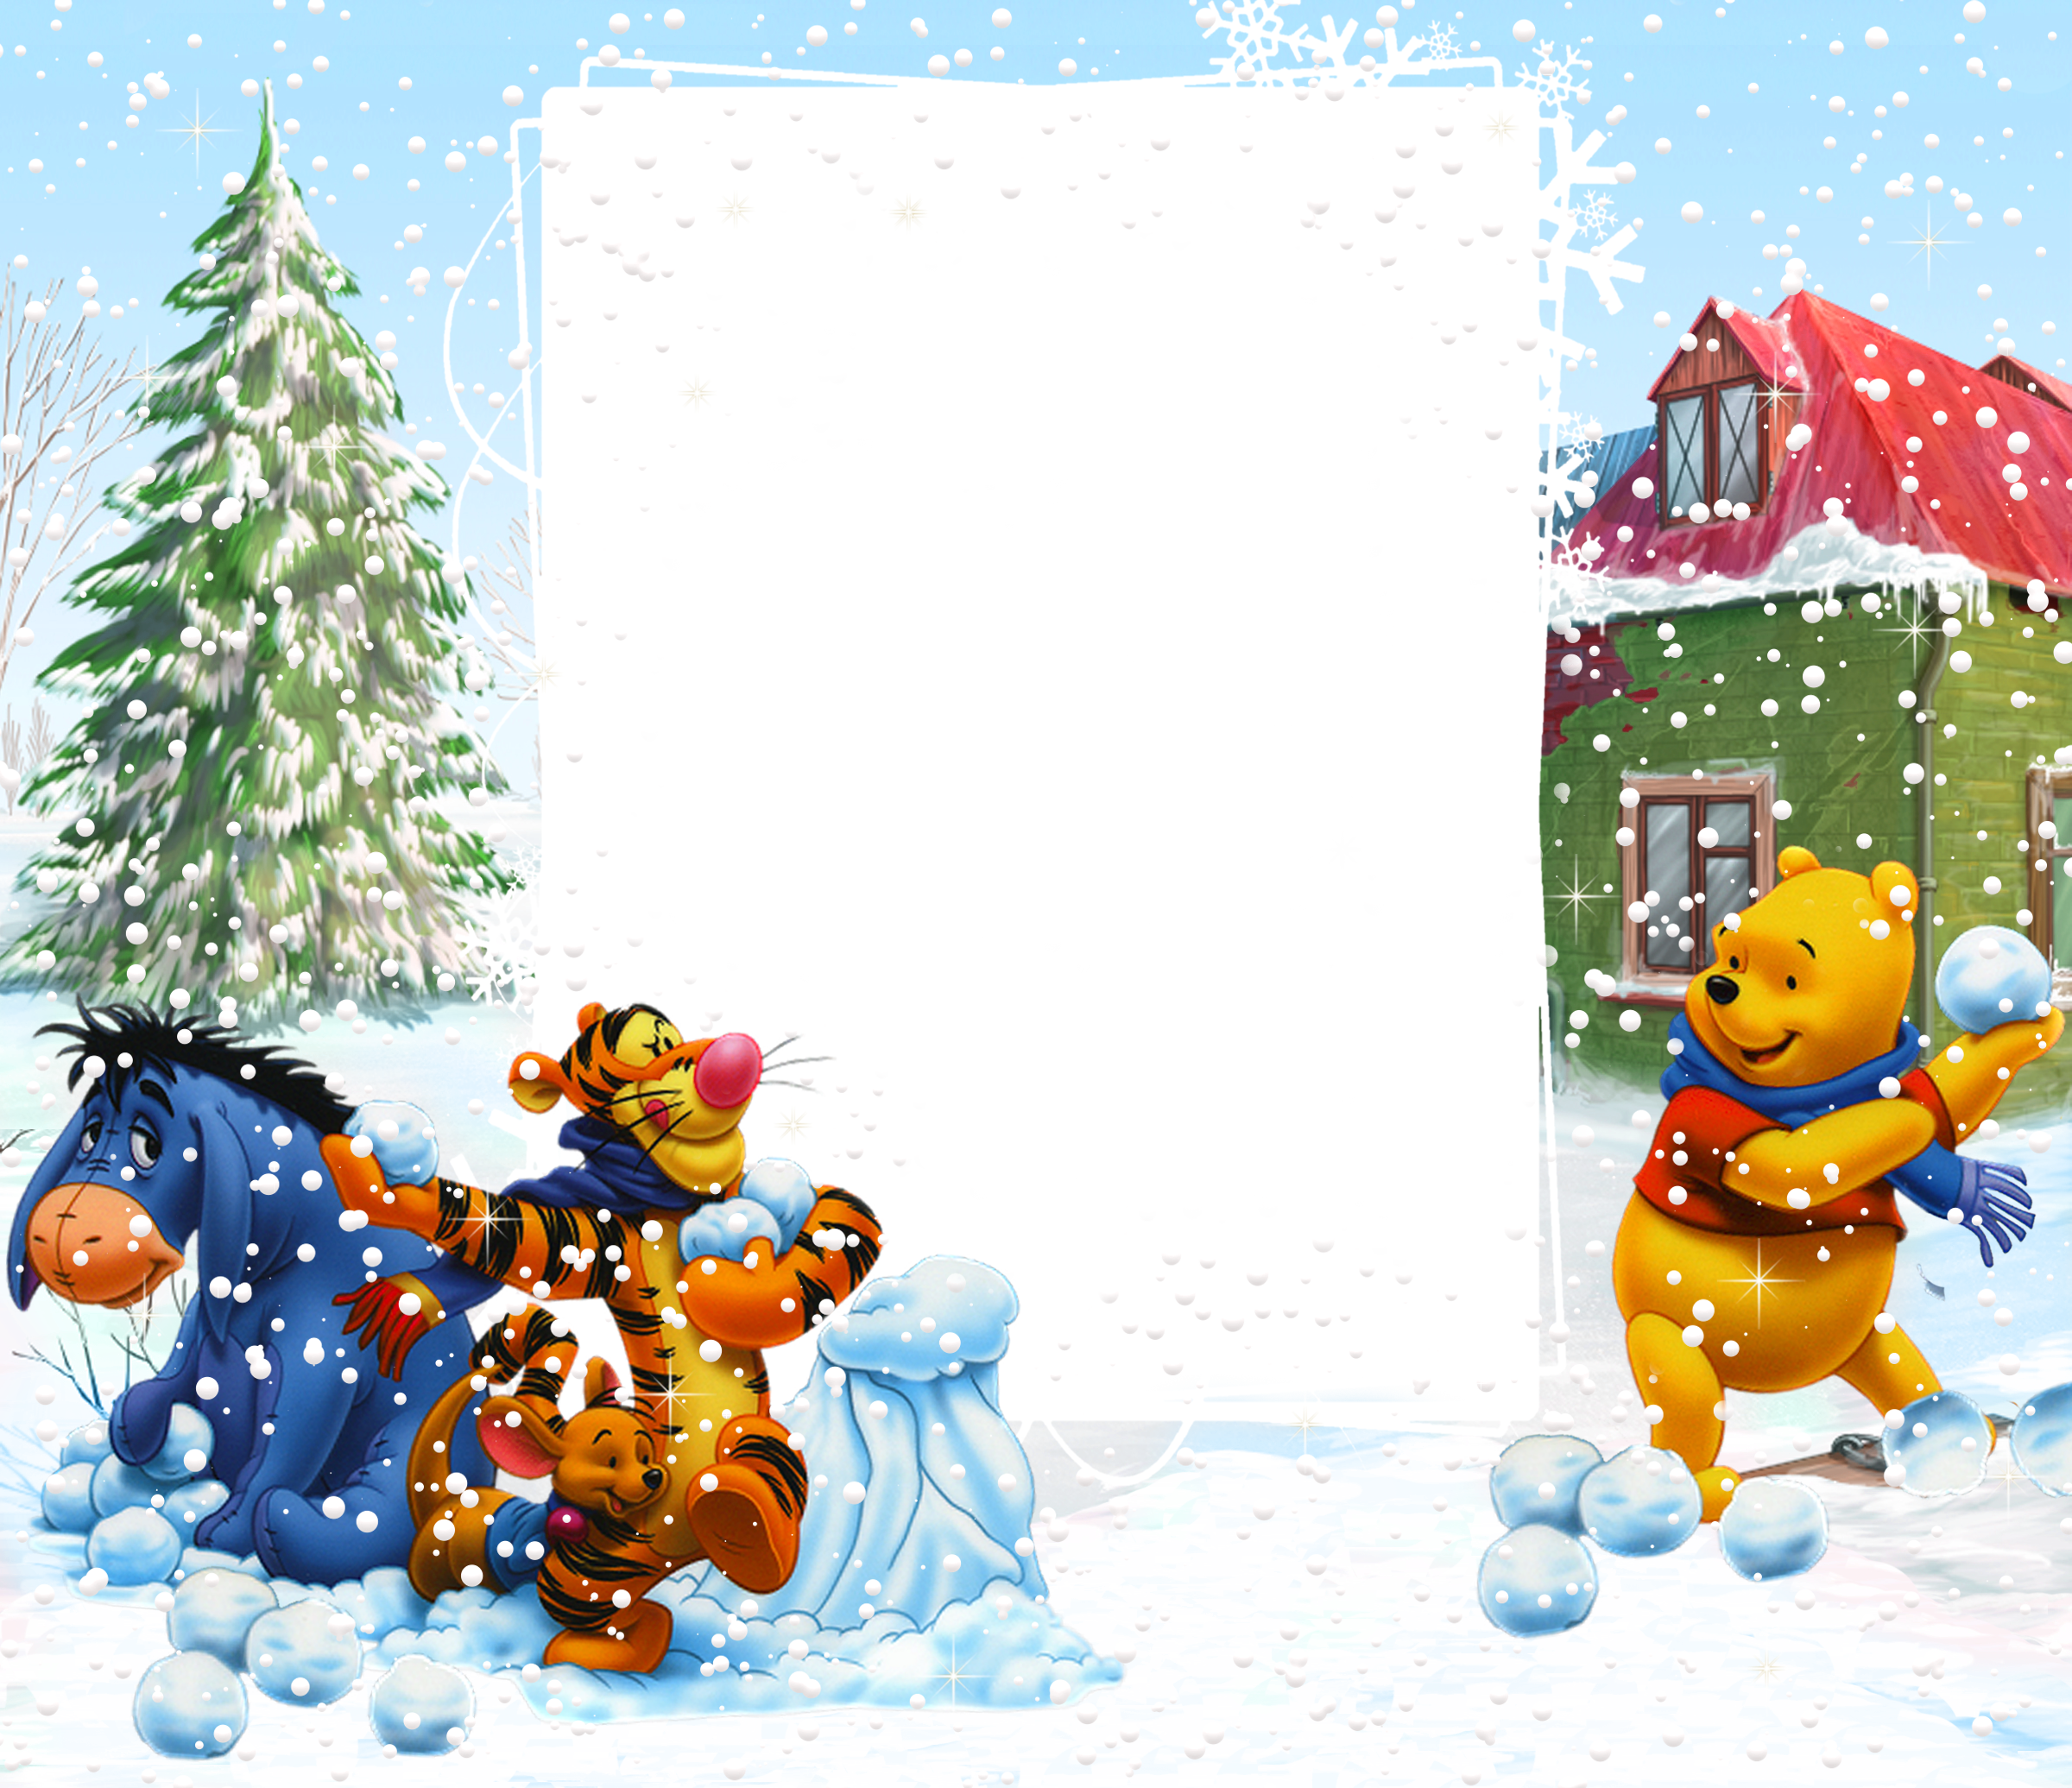 Frame clipart winter View Winnie Kids size Yopriceville